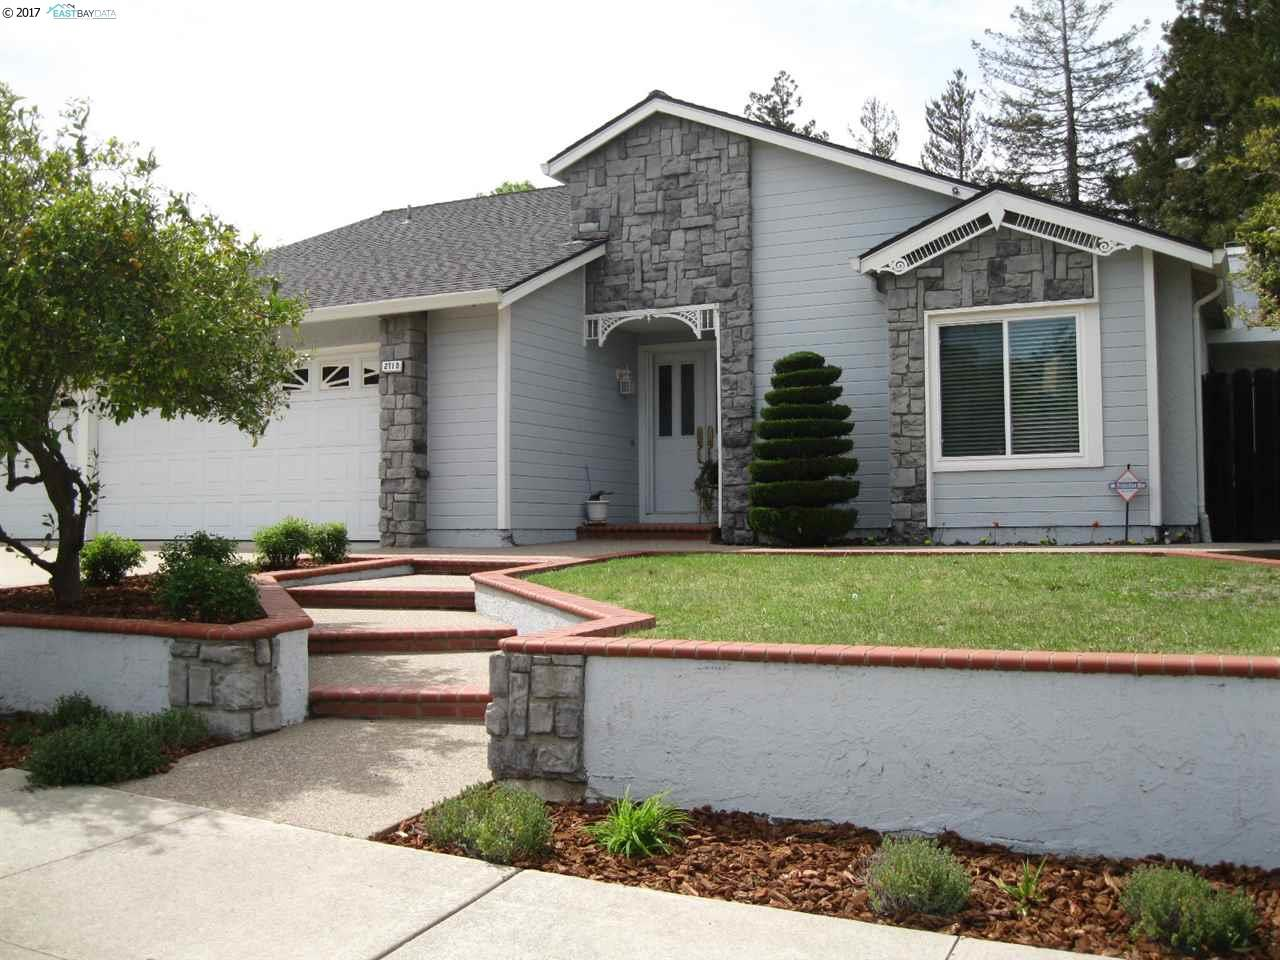 New Homes For Sale In Antioch Ca